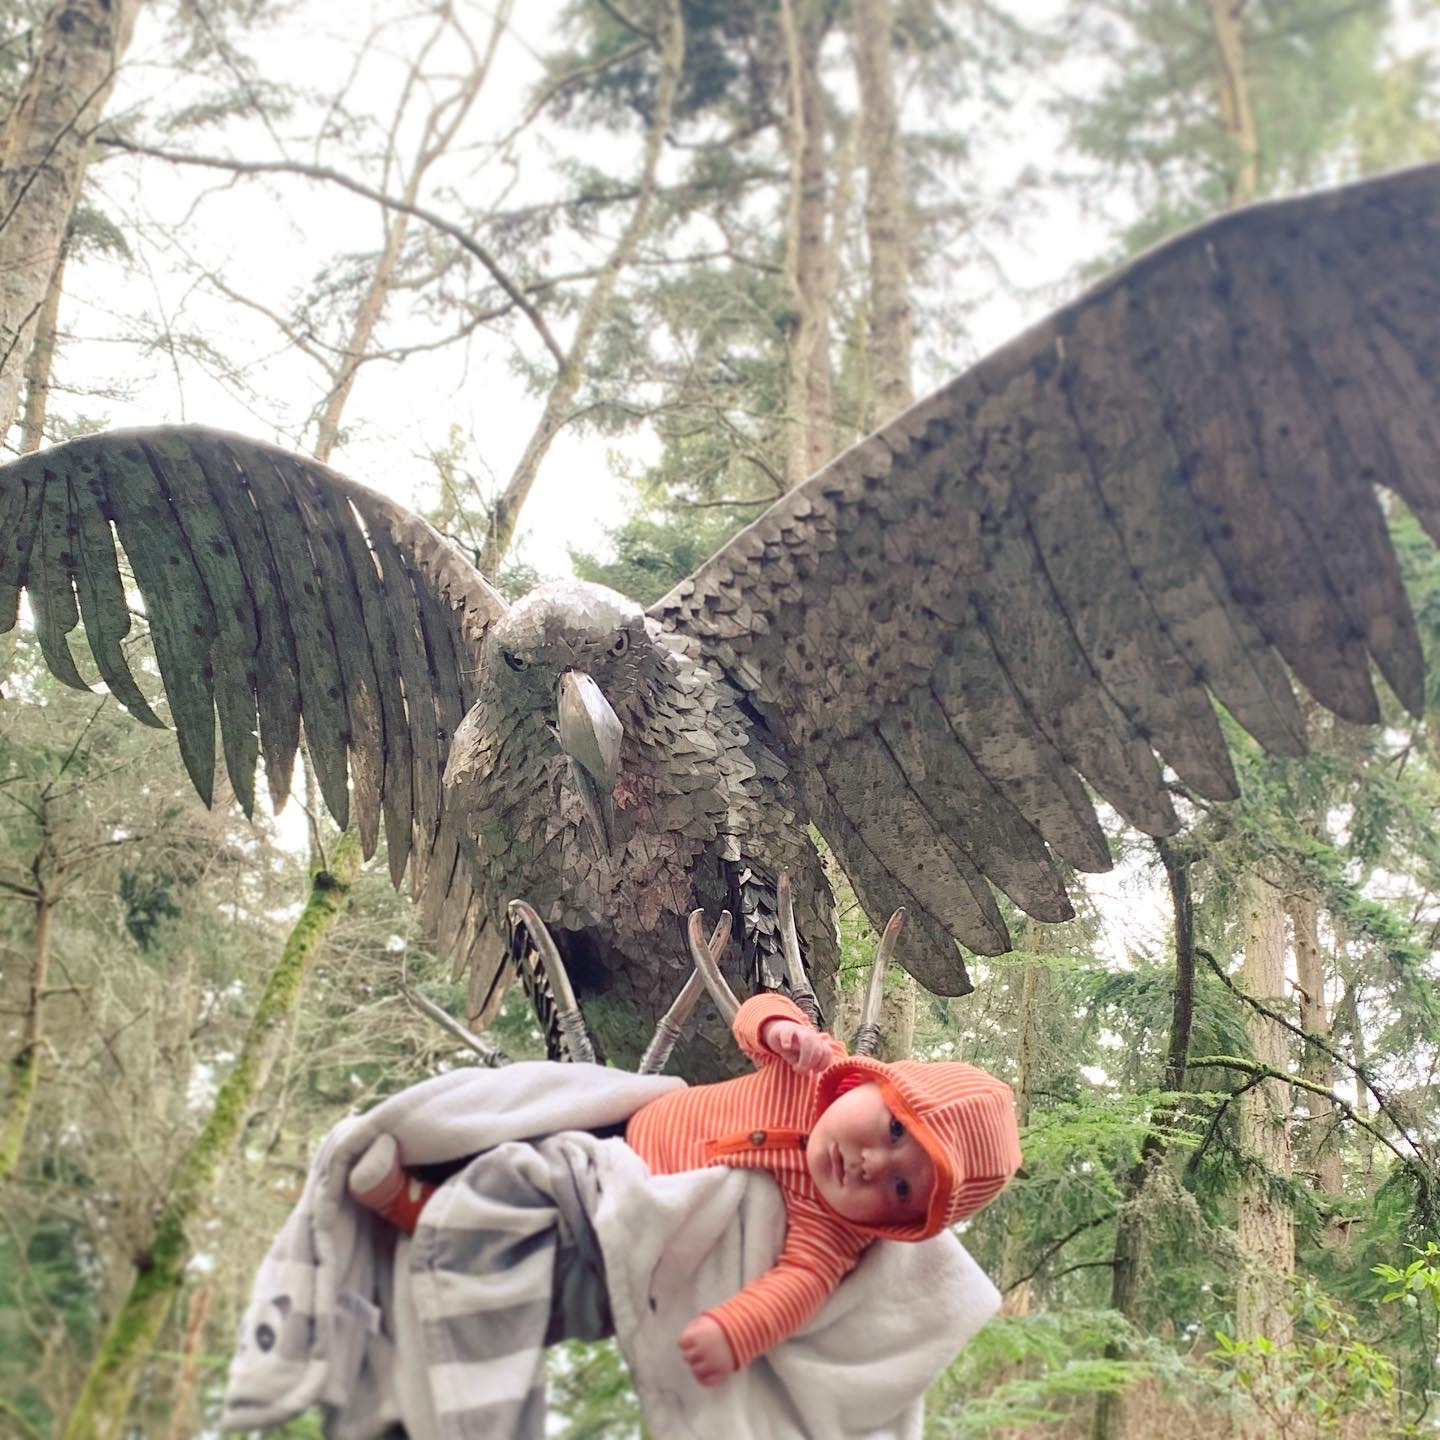 Greg Neal Attacking Eagle at Price Sculpture Forest - photo by Brianna Smith with son Elijah from Oak Harbor WA